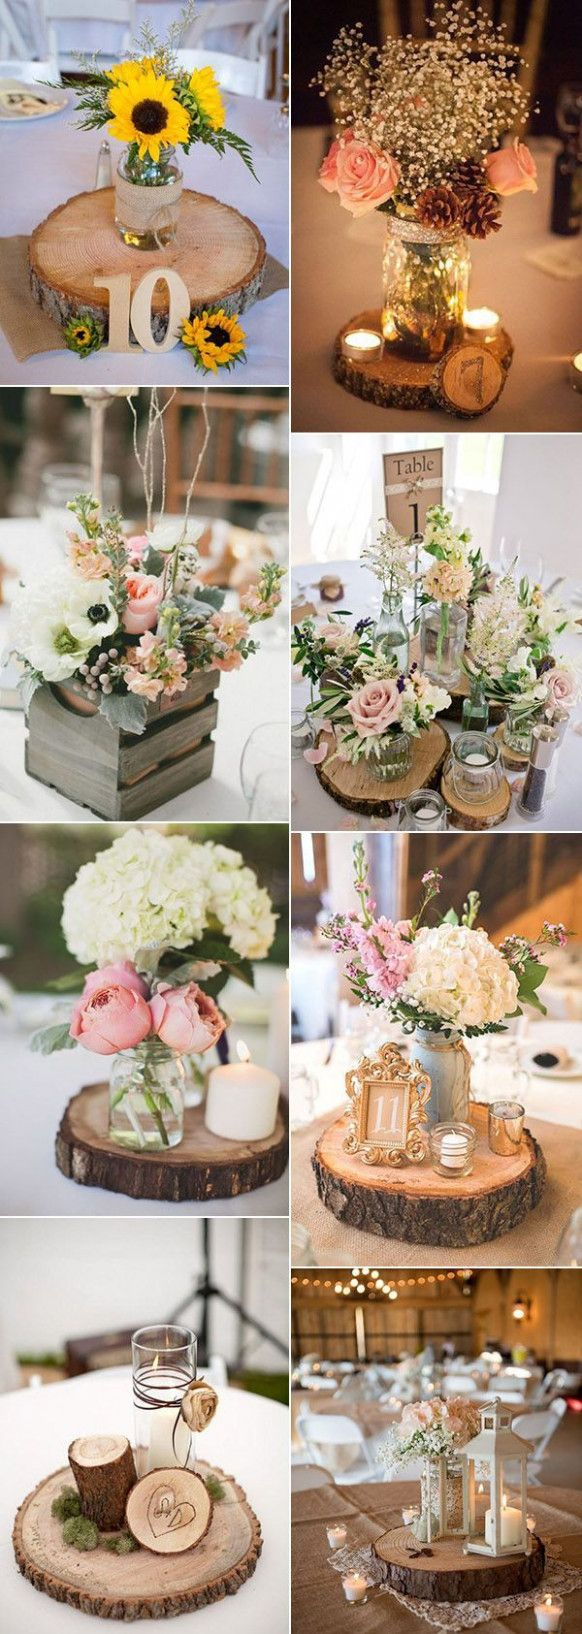 Simple rustic wedding ideas shabby chic wedding pinterest